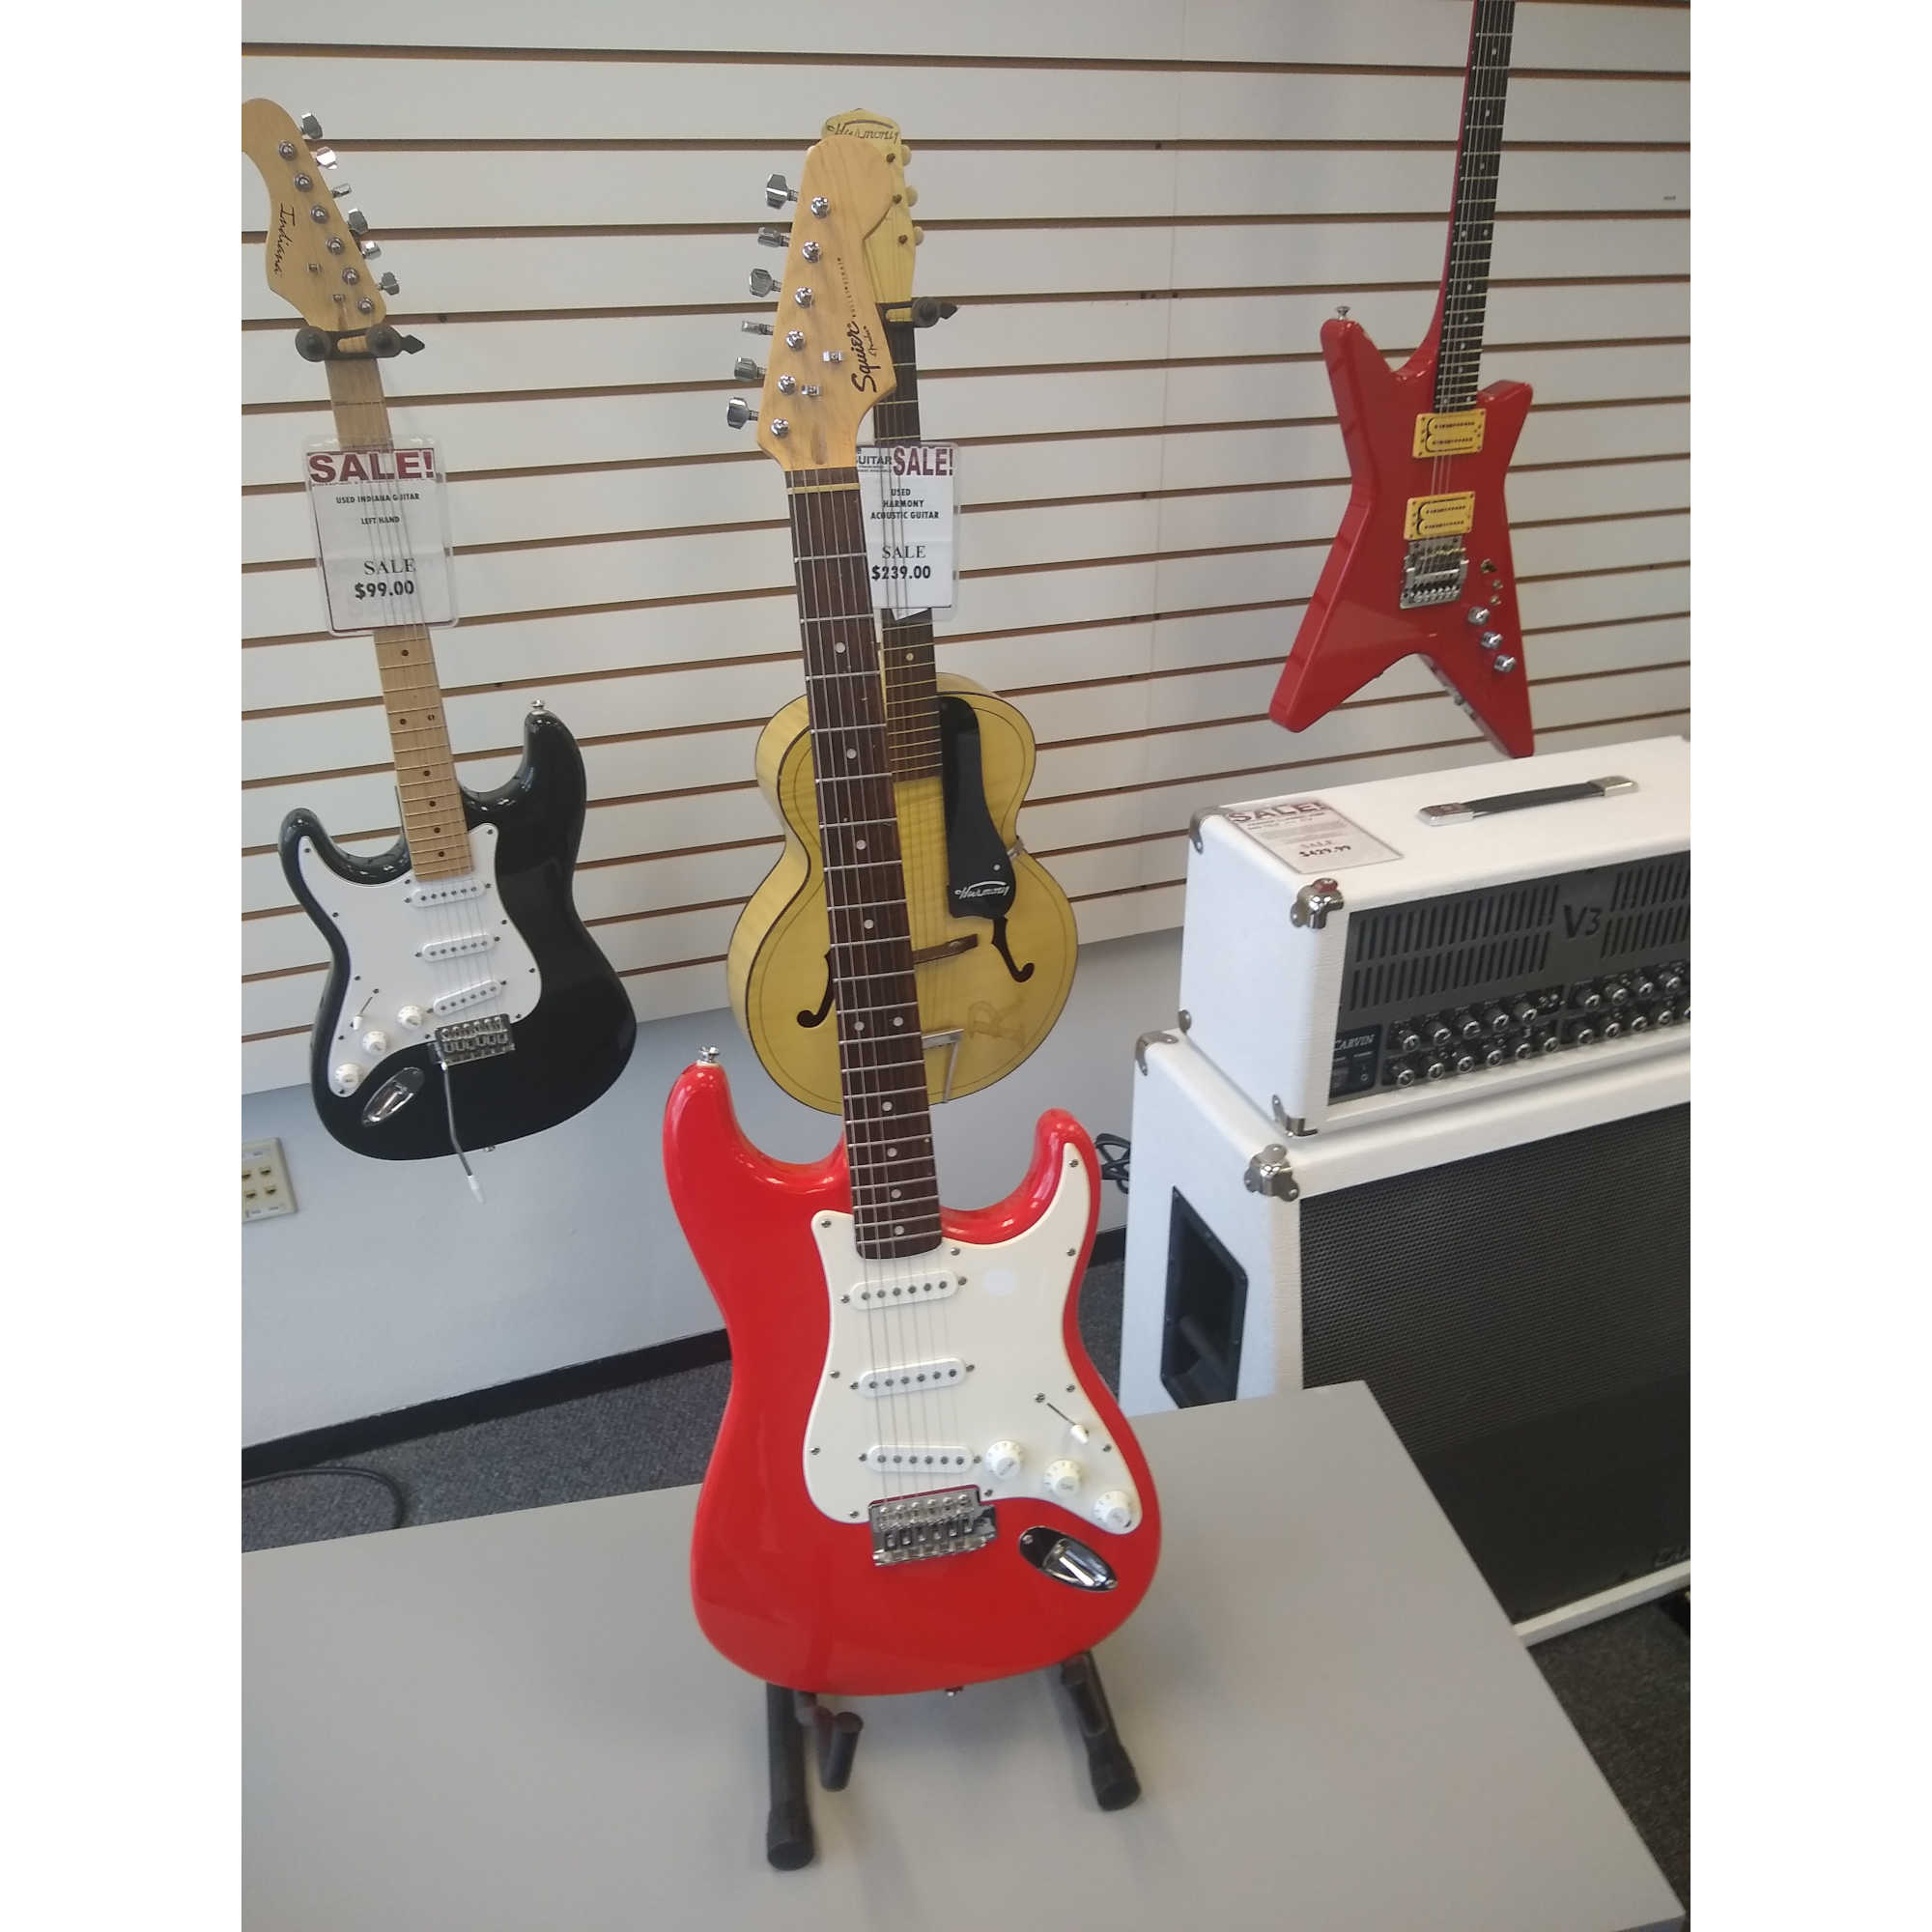 Squier Guitar With Amp - Red Polish Finish